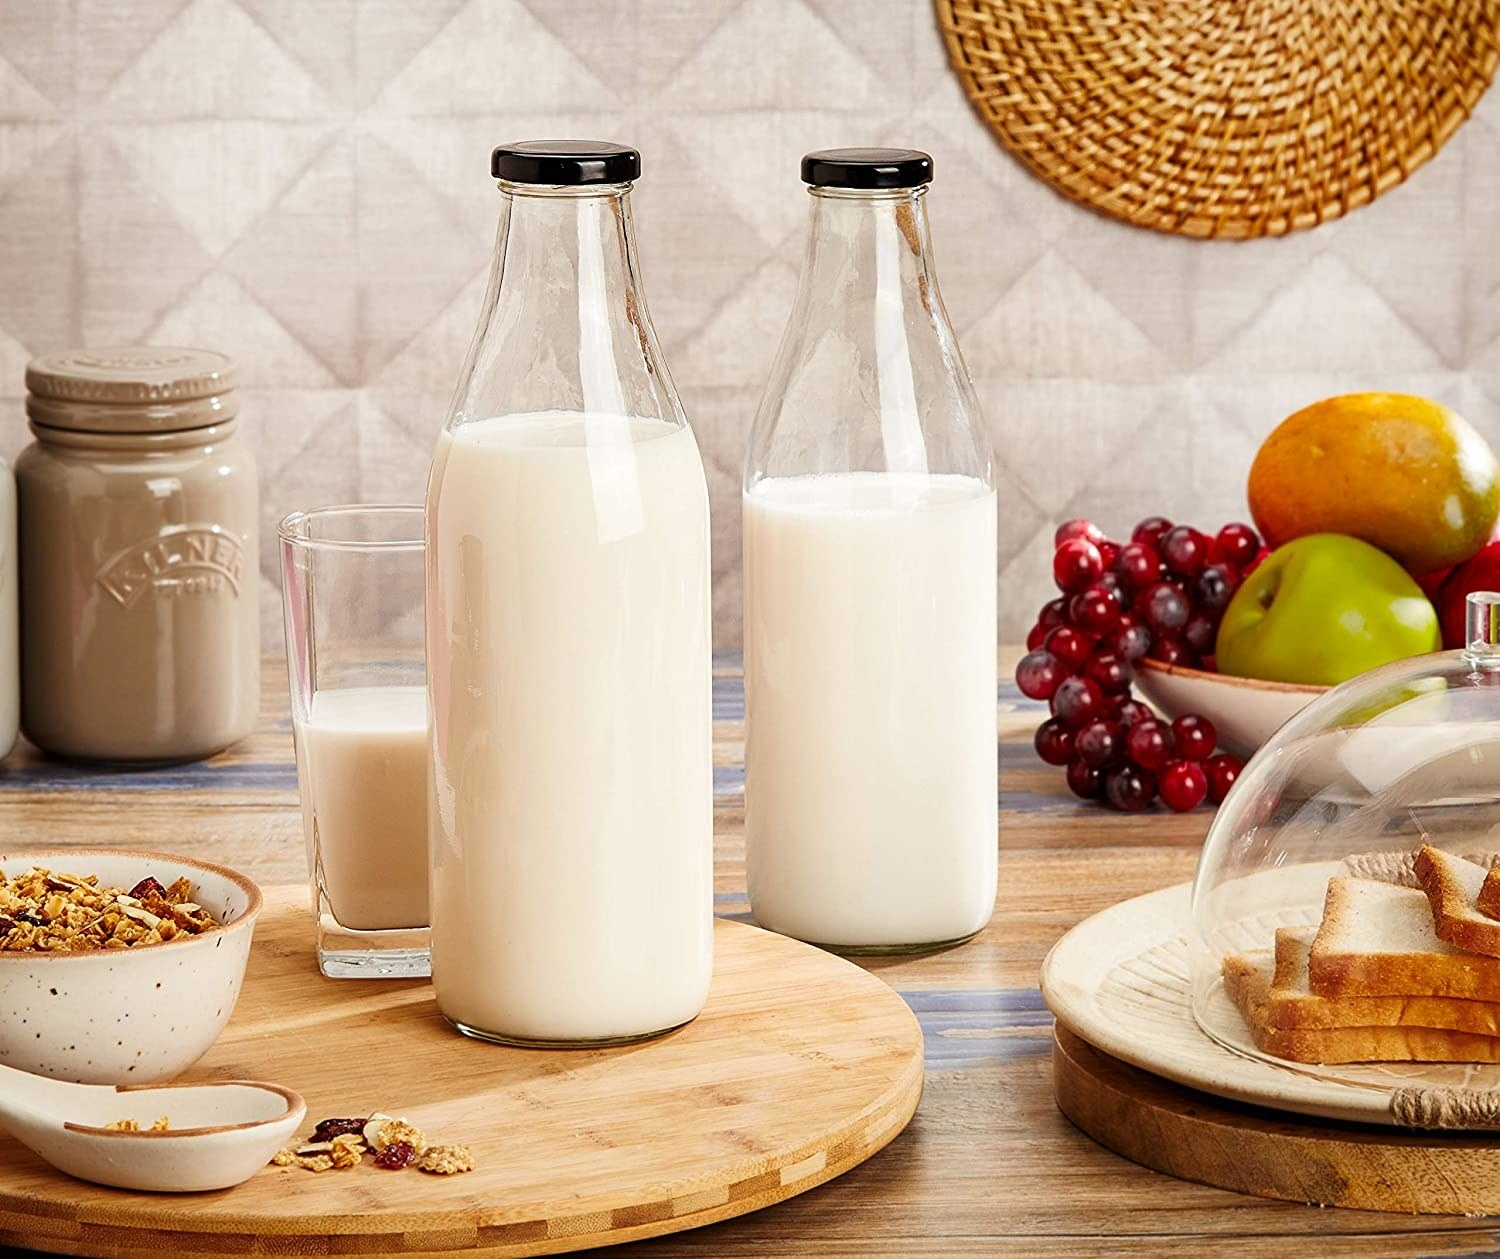 The glass bottles displayed with milk in them on a kitchen counter, surrounded by breakfast foods.